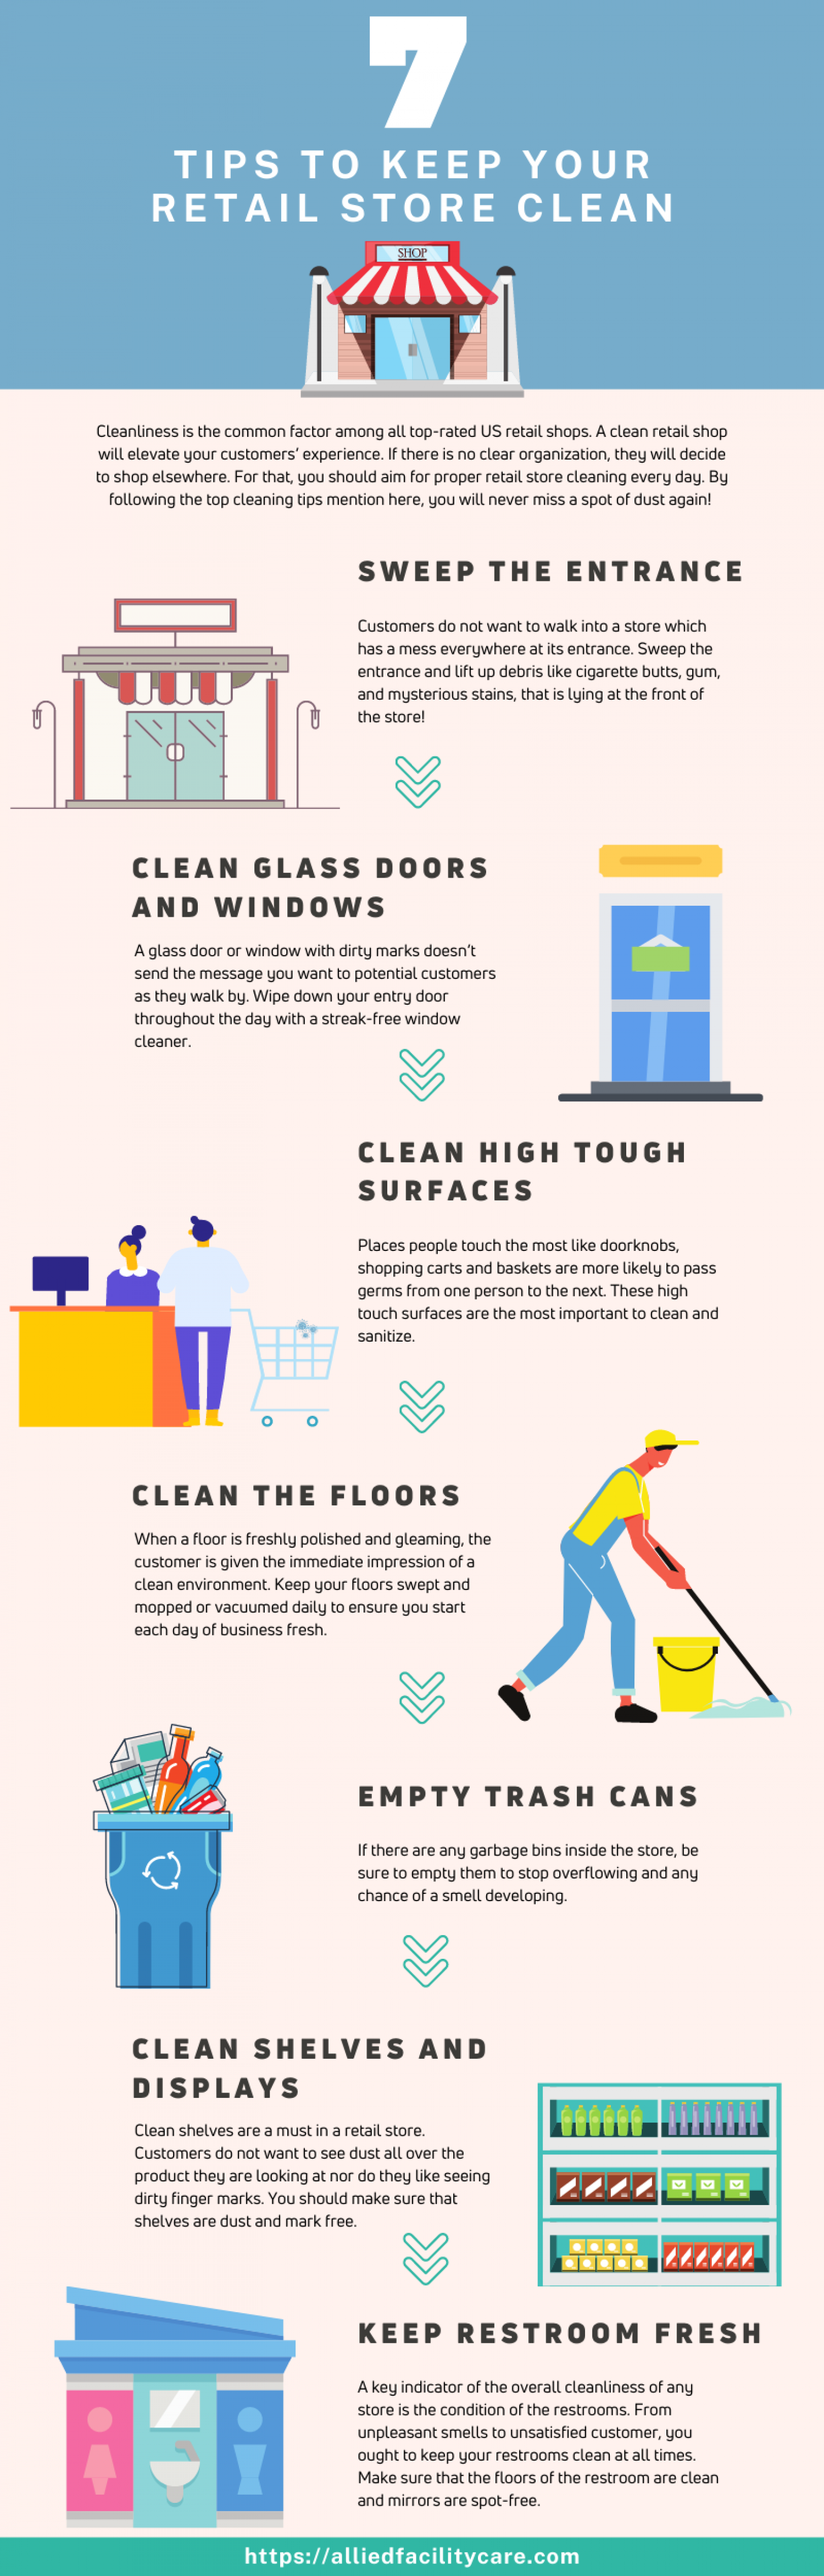 7 Tips to Keep Your Retail Store Clean Infographic